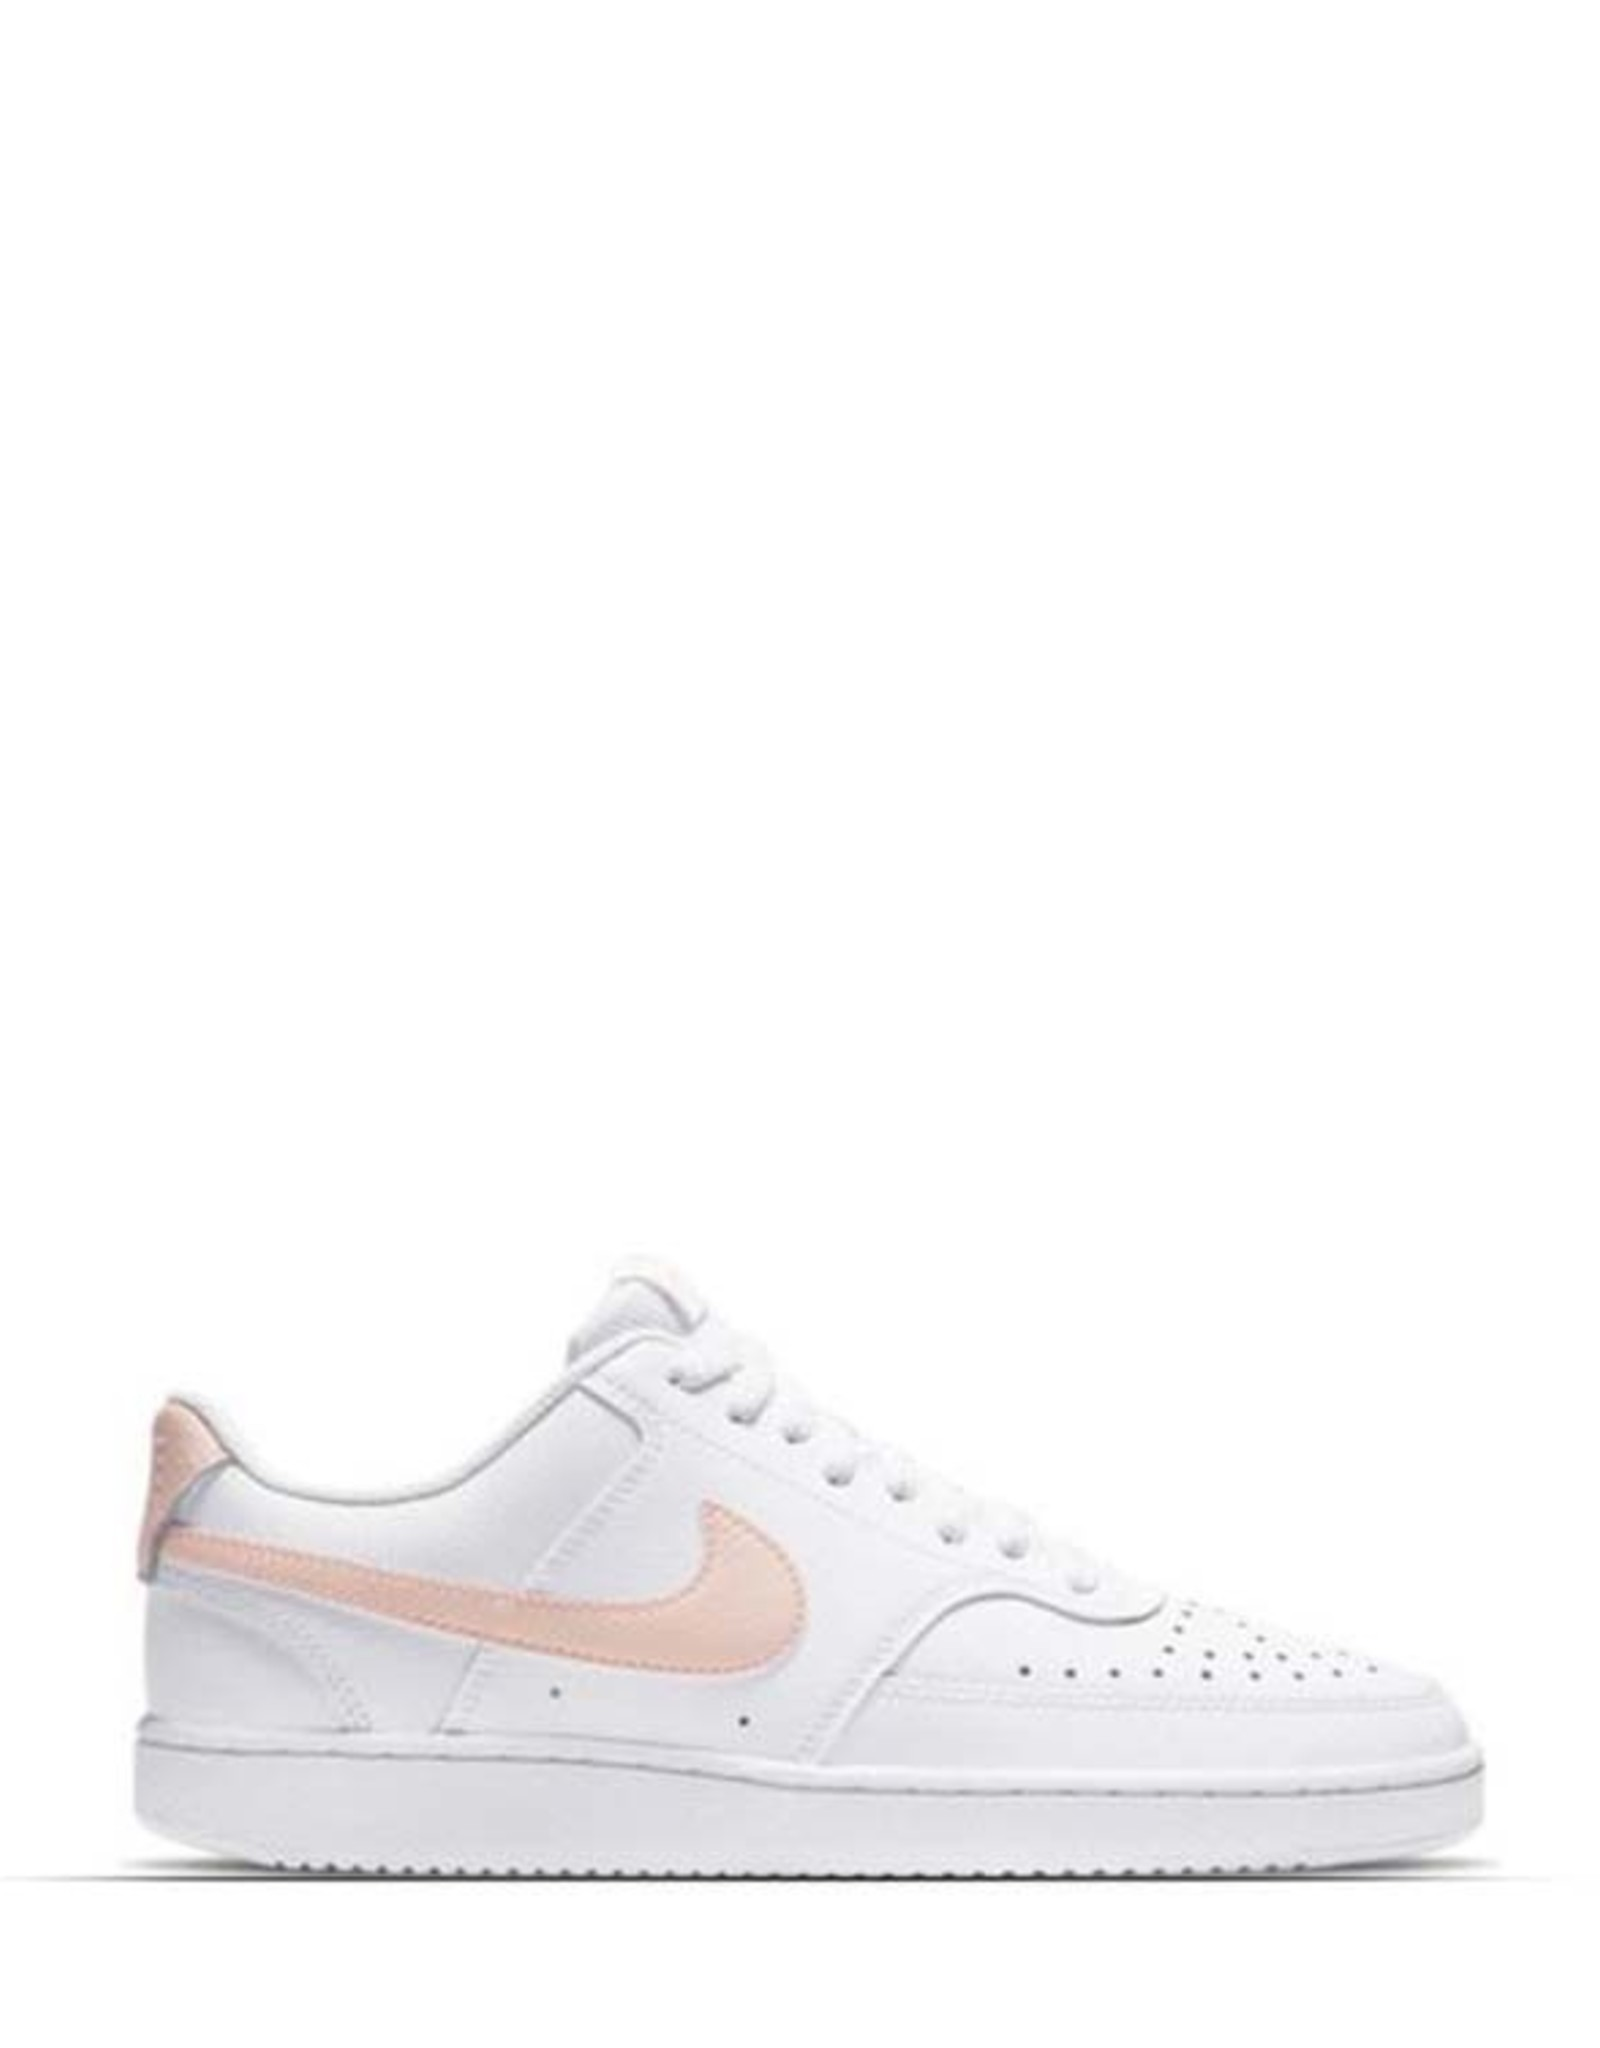 NIKE COURT VISION LOW WHITE/CORAL WMNS